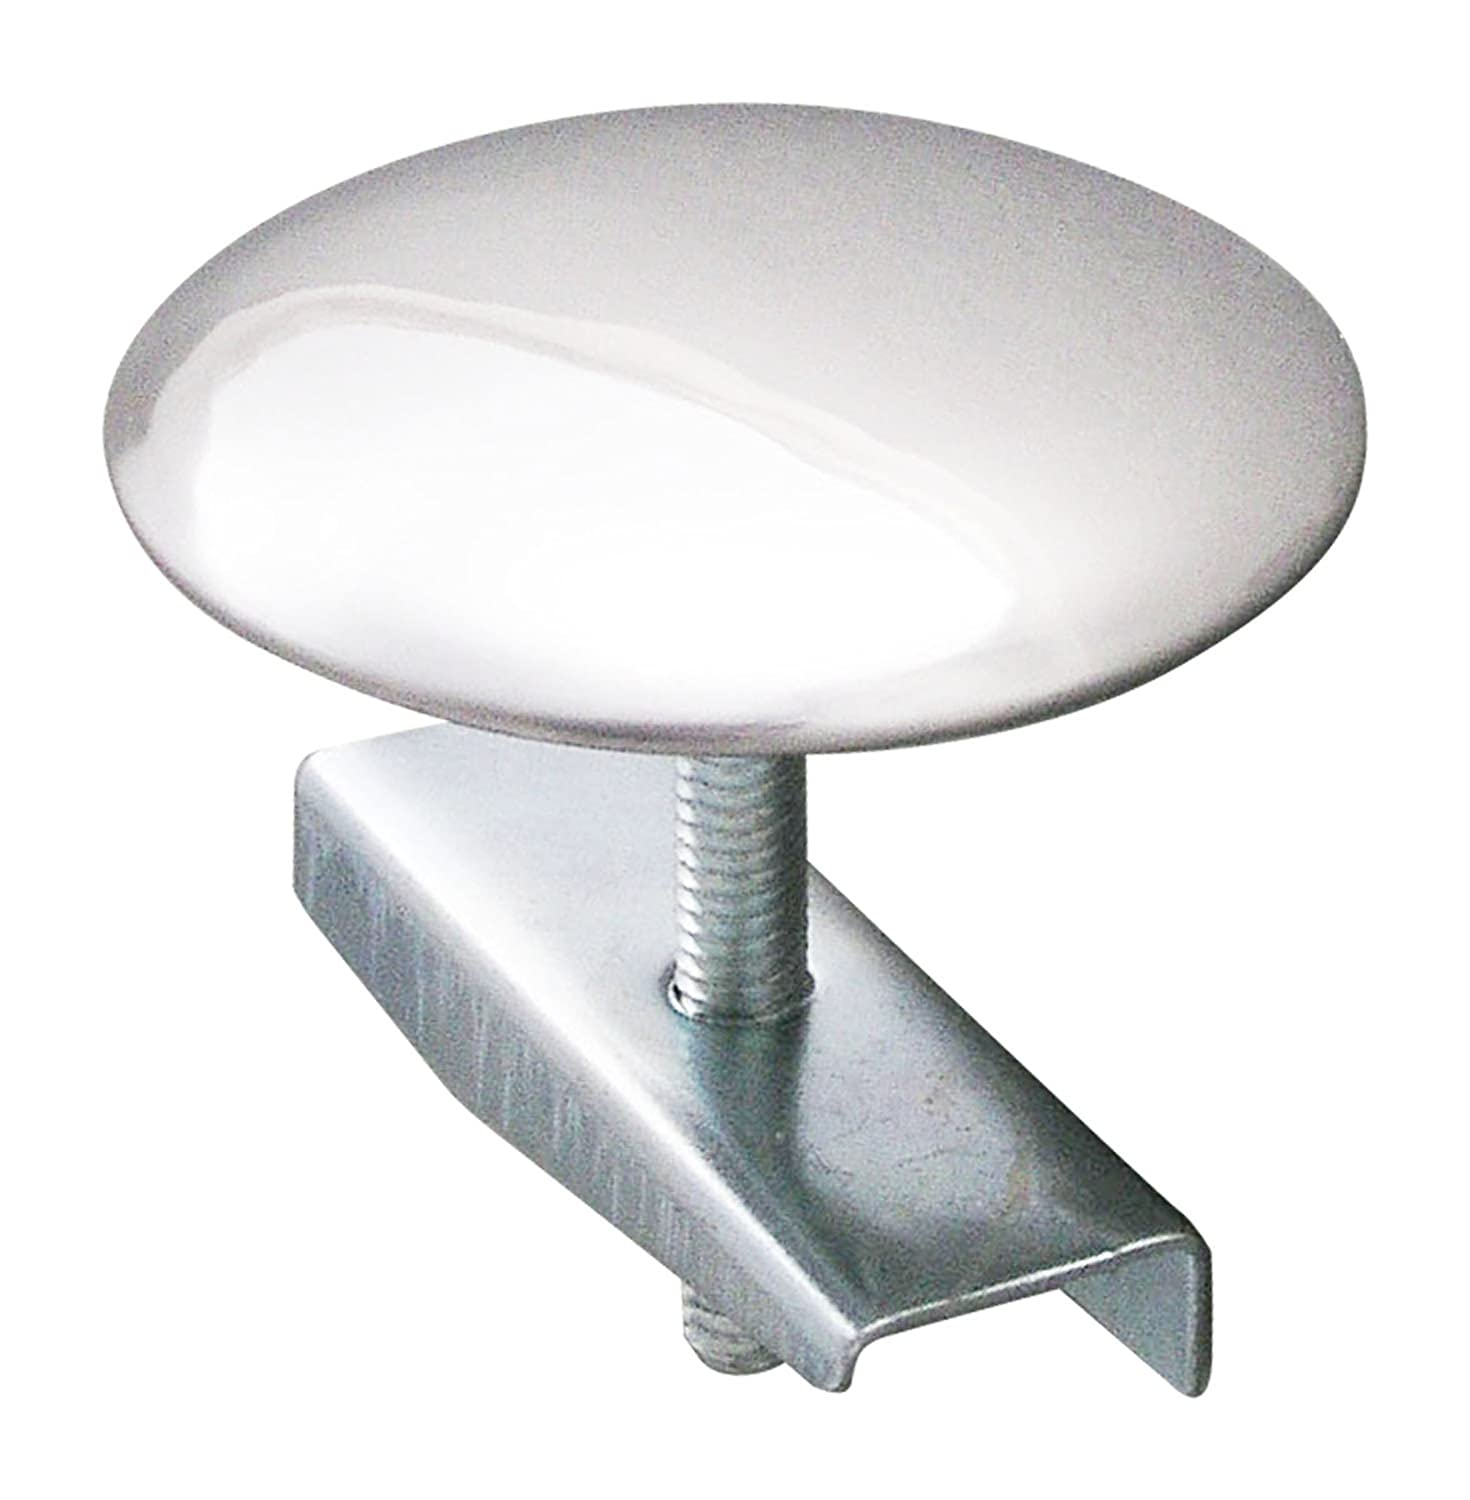 LDR 501 6410 Bolt Type Stainless Steel Faucet Hole Cover, Chrome